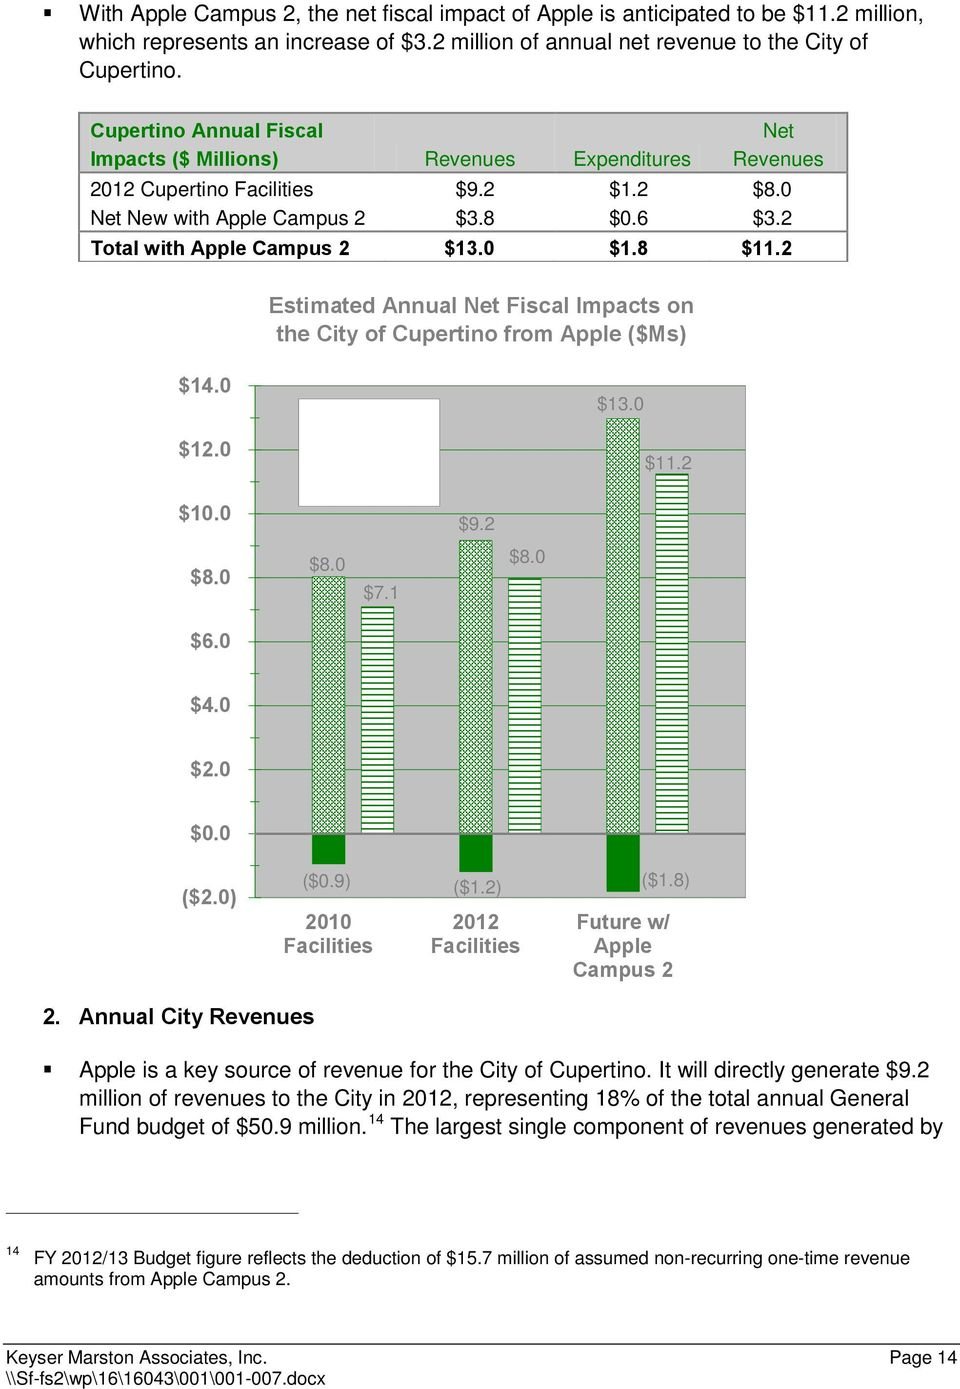 2 Estimated Annual Net Fiscal Impacts on the City of from Apple ($Ms) $14.0 Net $13.0 $12.0 $10.0 Expenditures Revenues $9.2 $11.2 $8.0 $8.0 $7.1 $8.0 $6.0 $4.0 $2.0 $0.0 ($2.0) ($0.9) ($1.